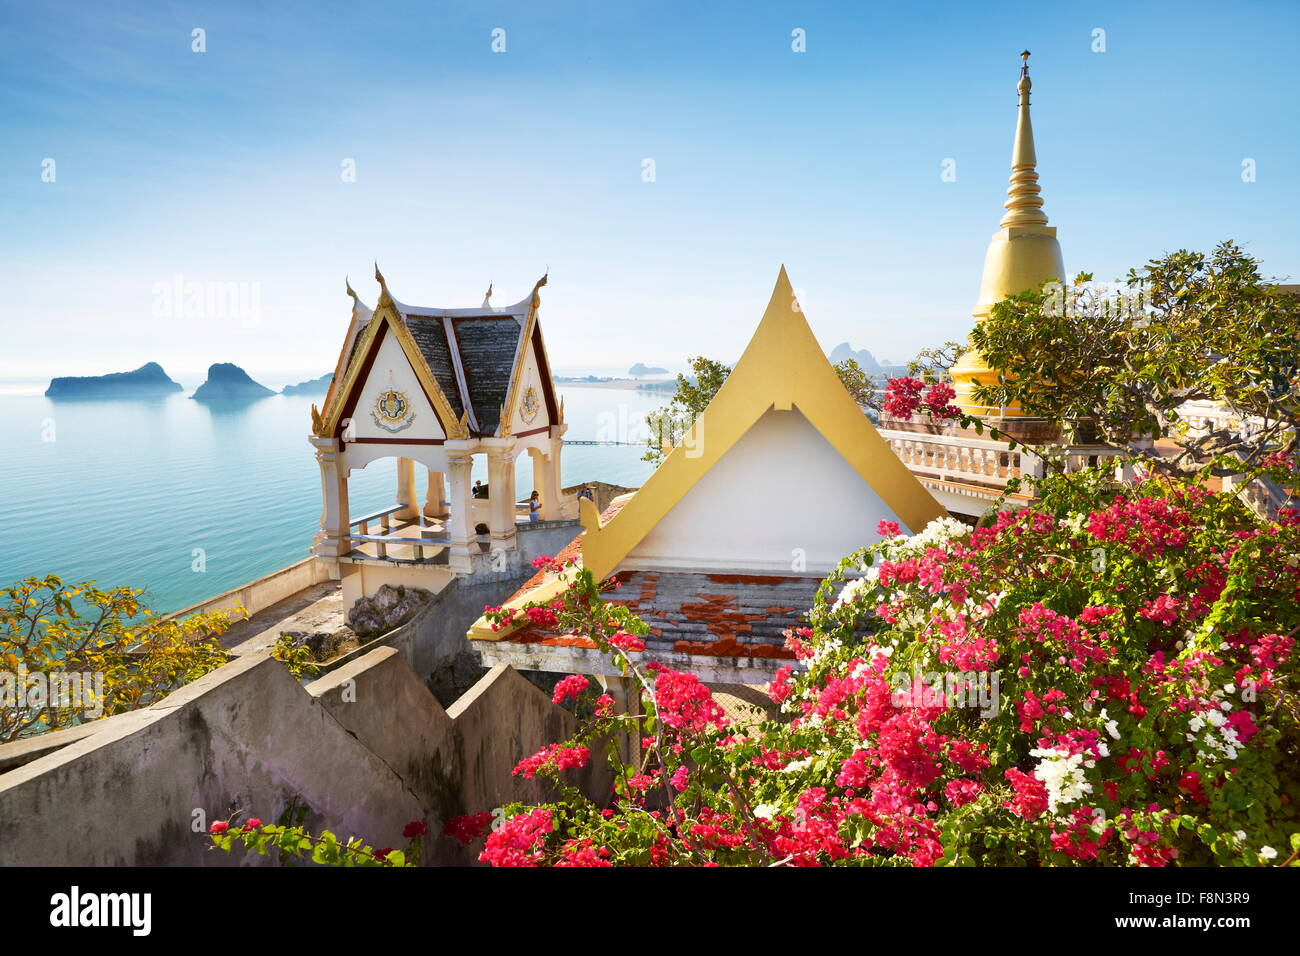 Thailand - Buddhist small monastery on the Khao Chong Krachok mountain, located near Prachuap city - Stock Image